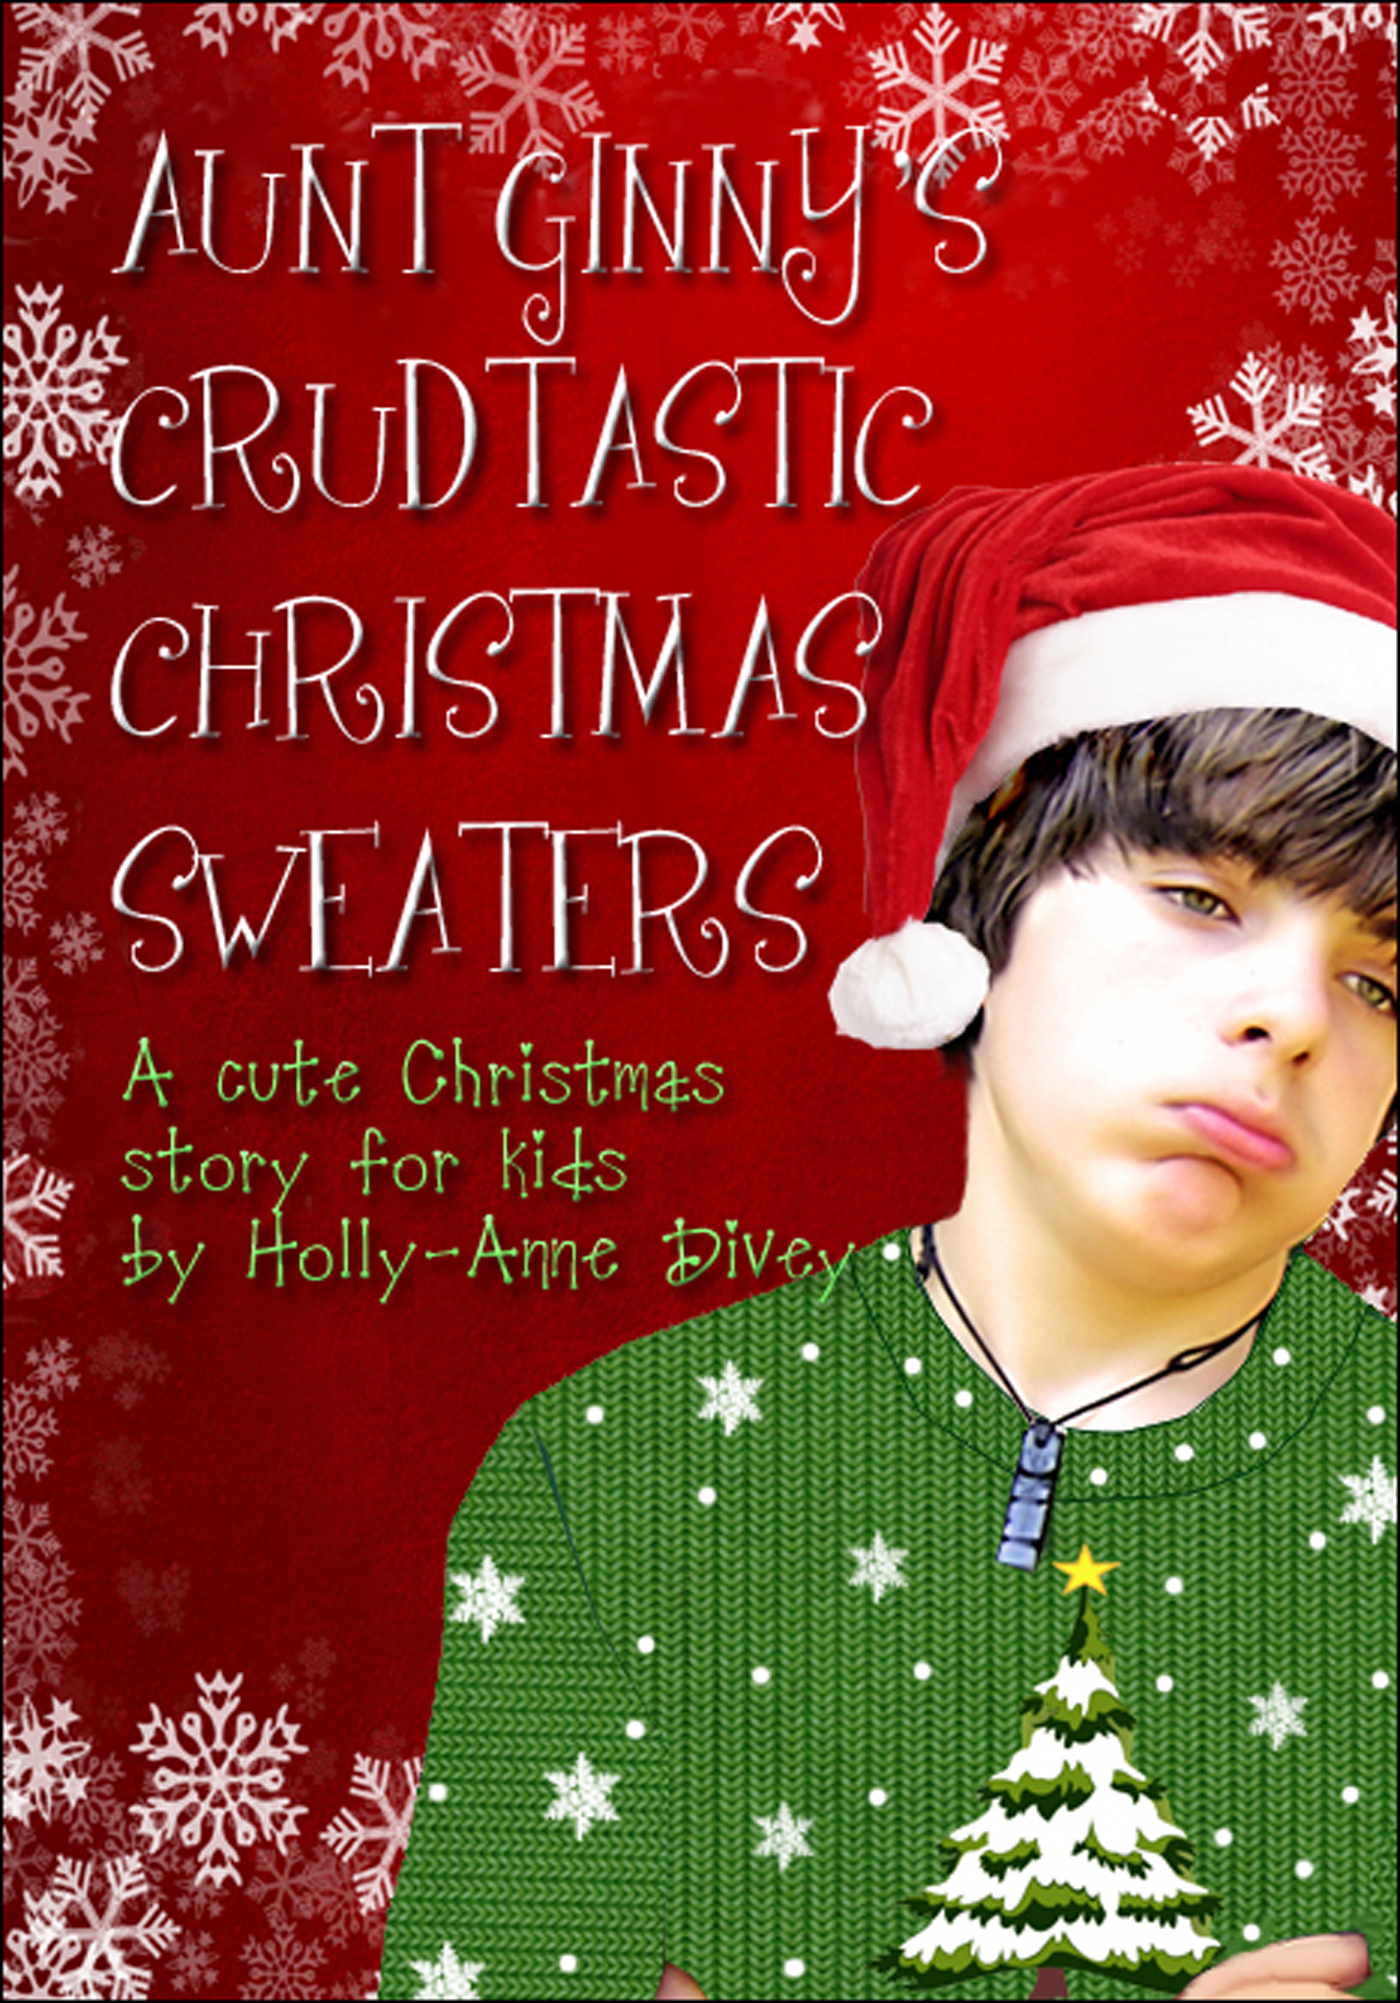 Christmas Story For Kids.Aunt Ginny S Crudtastic Christmas Sweaters A Cute Christmas Story For Kids An Ebook By Holly Anne Divey